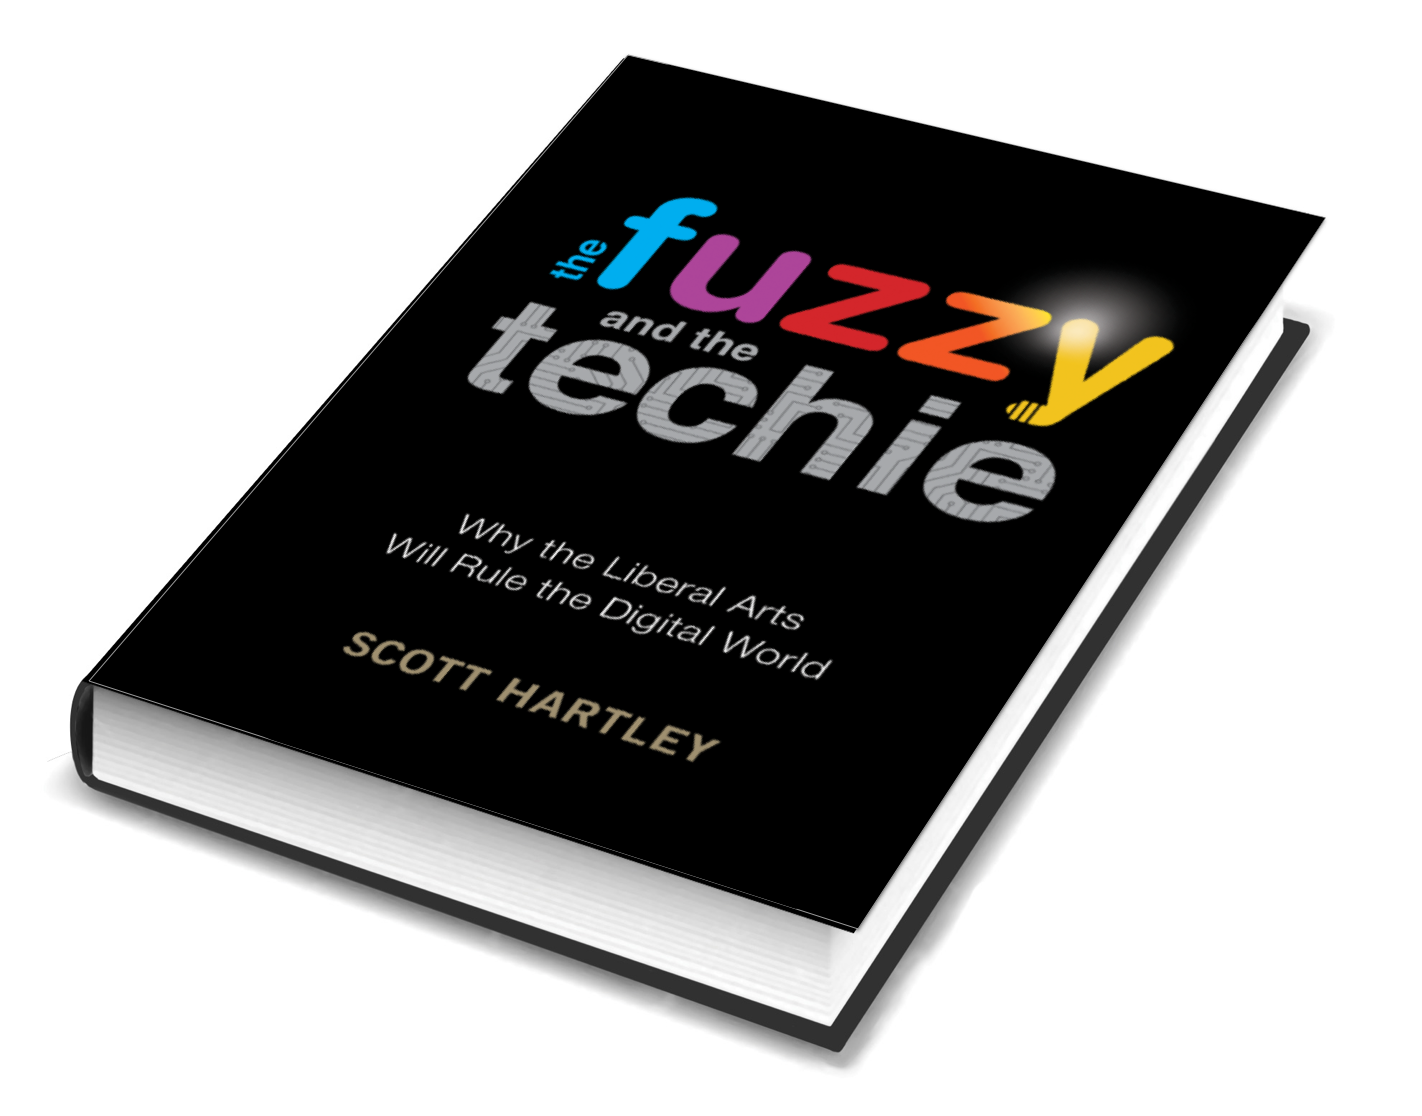 The Fuzzy and The Techie by Scott Hartley (courtesy photo)